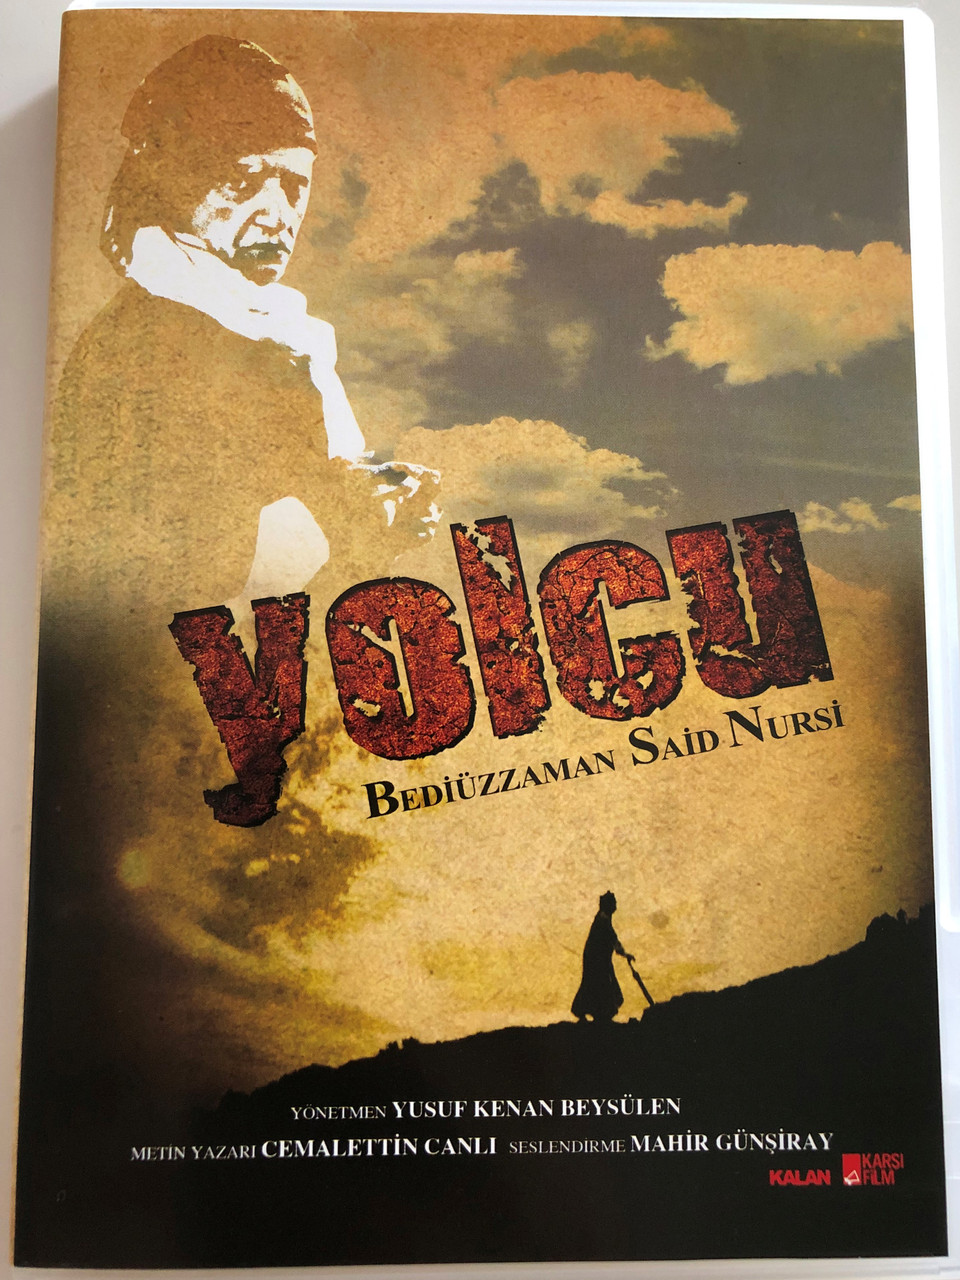 Yolcu Bediüzzaman Said Nursi Dvd 1994 Passenger Directed By Yusuf Kenan Beysülen With Turskih Language Historical Booklet About Said Nursi The Scholar S Life Bibleinmylanguage